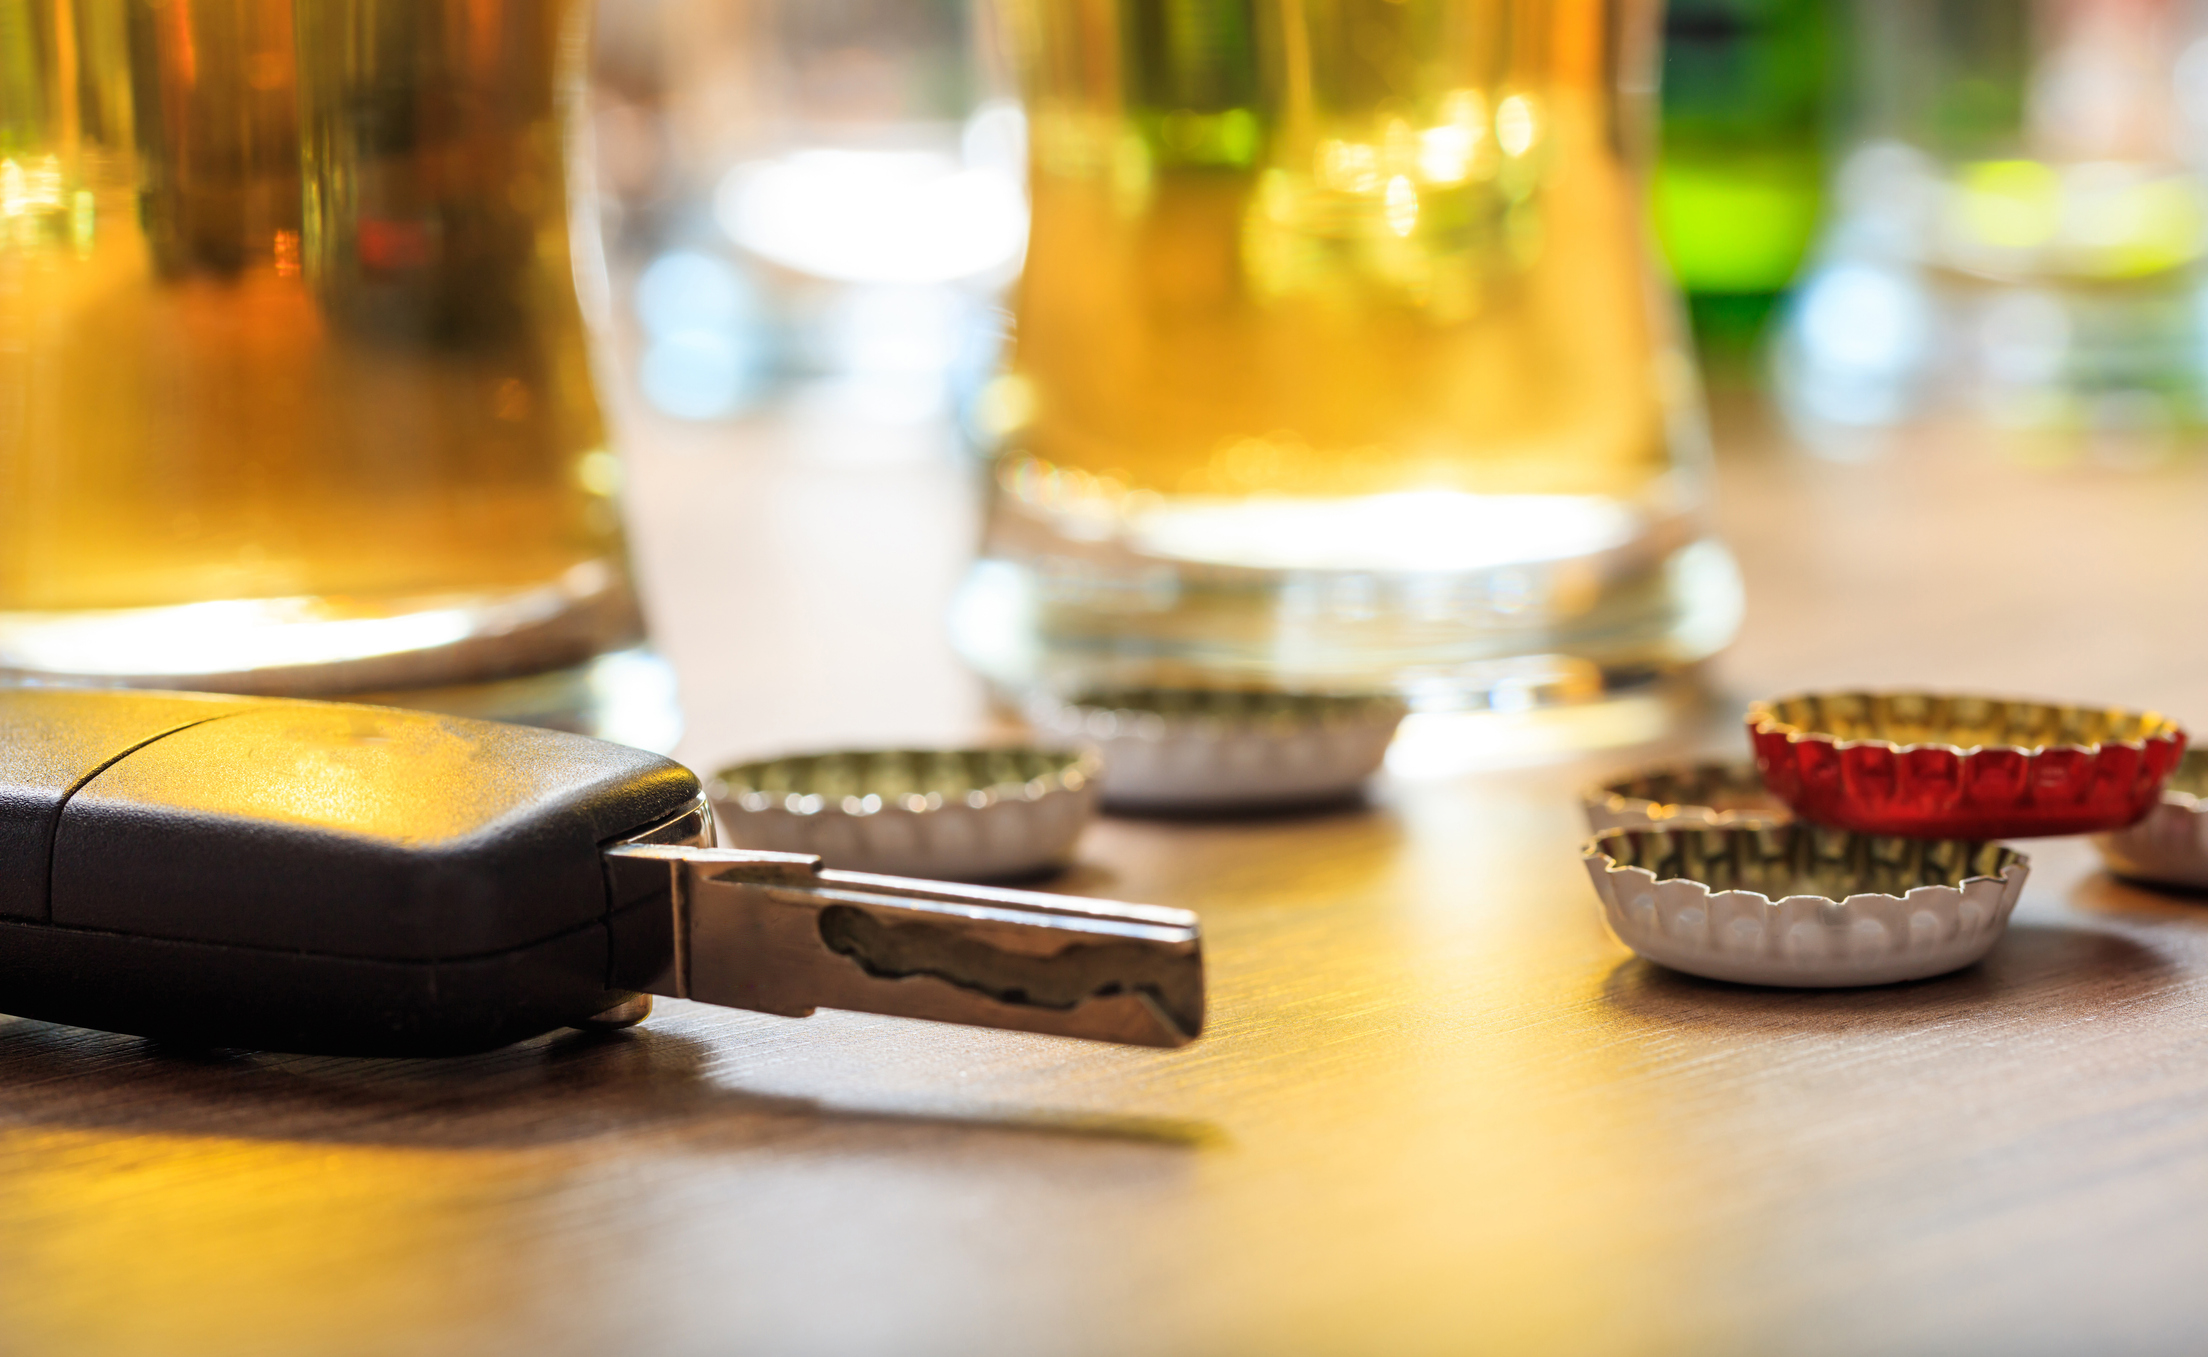 Drinking and driving concept showed with car keys next to beer